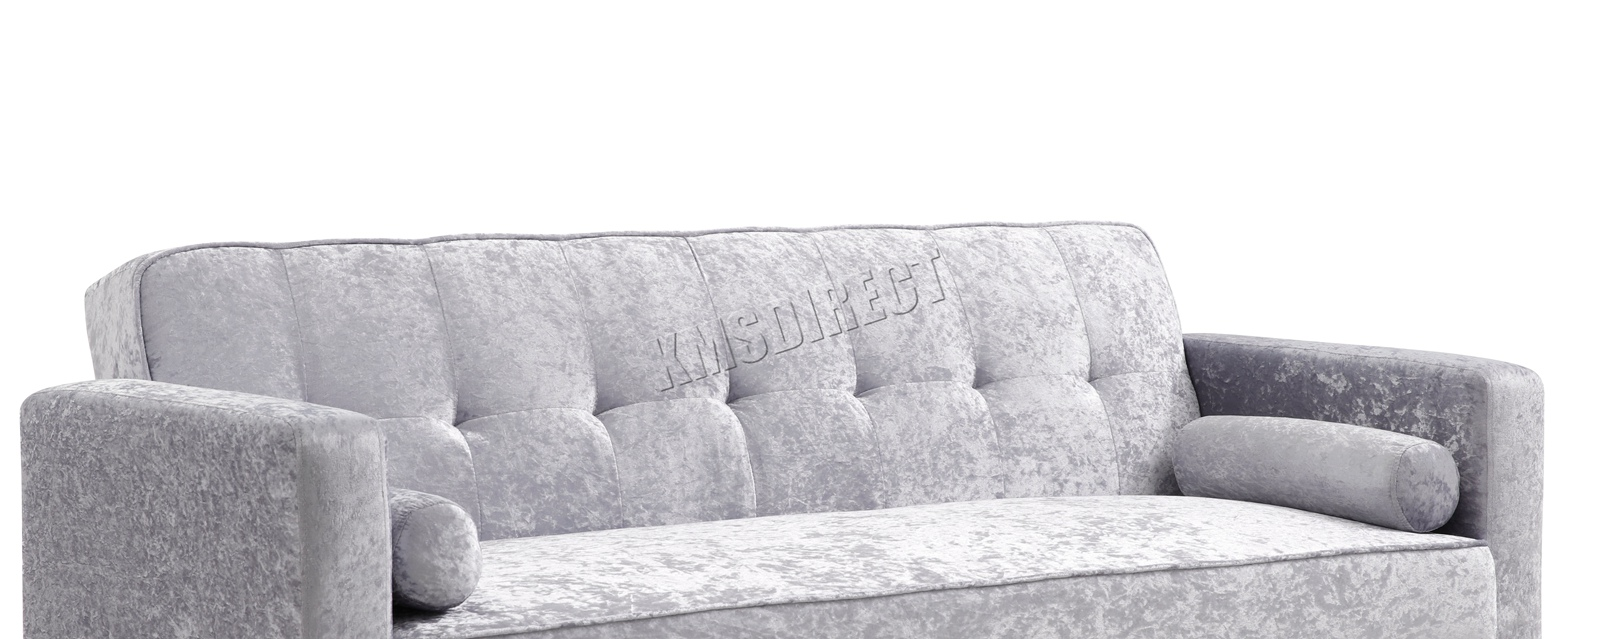 WestWood-Fabric-Sofa-Bed-3-Seater-Couch-Luxury-Modern-Home-Furniture-FSB04-New thumbnail 37